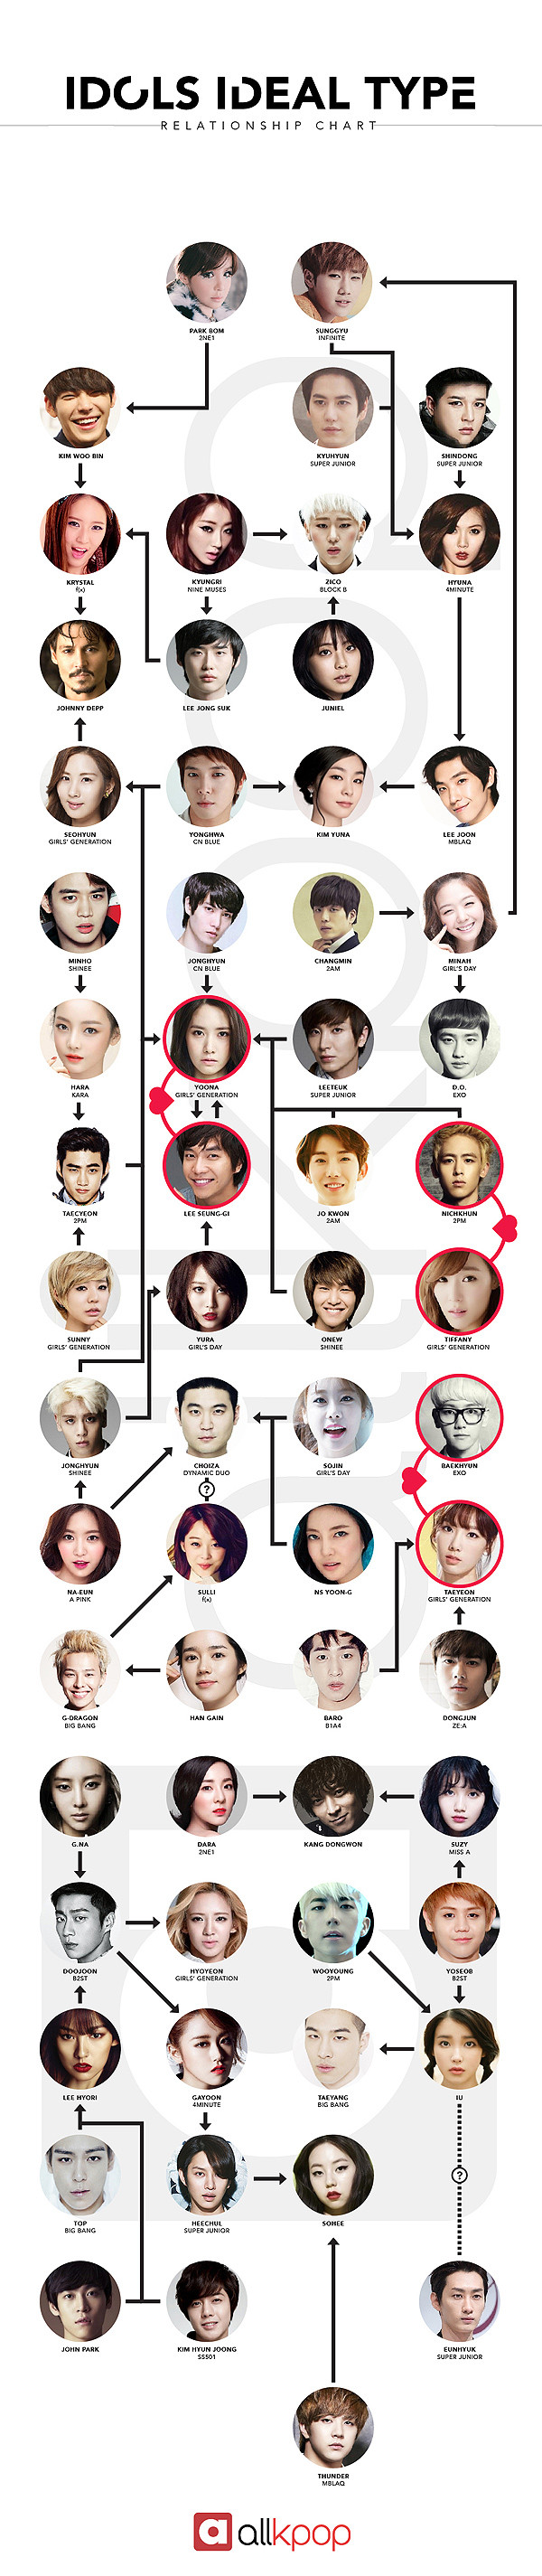 Idols Ideal Type Relationship Chart Relationship Chart Exo Ideal Type Pop Artist